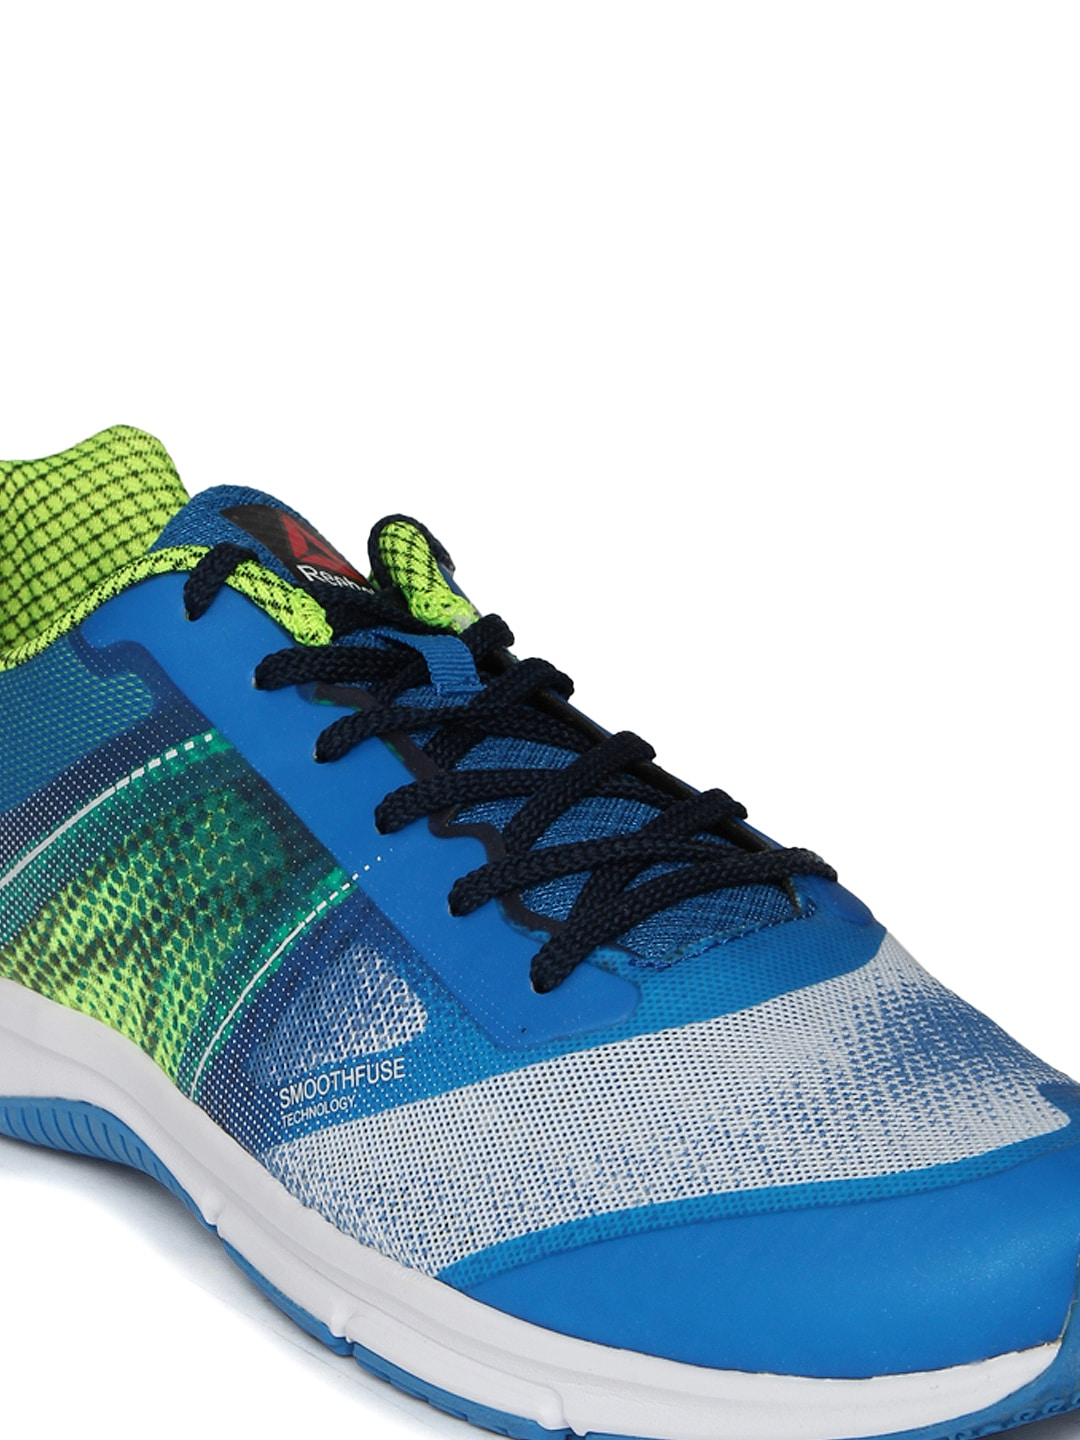 Buy reebok air shoes   OFF40% Discounted db9f6c93e